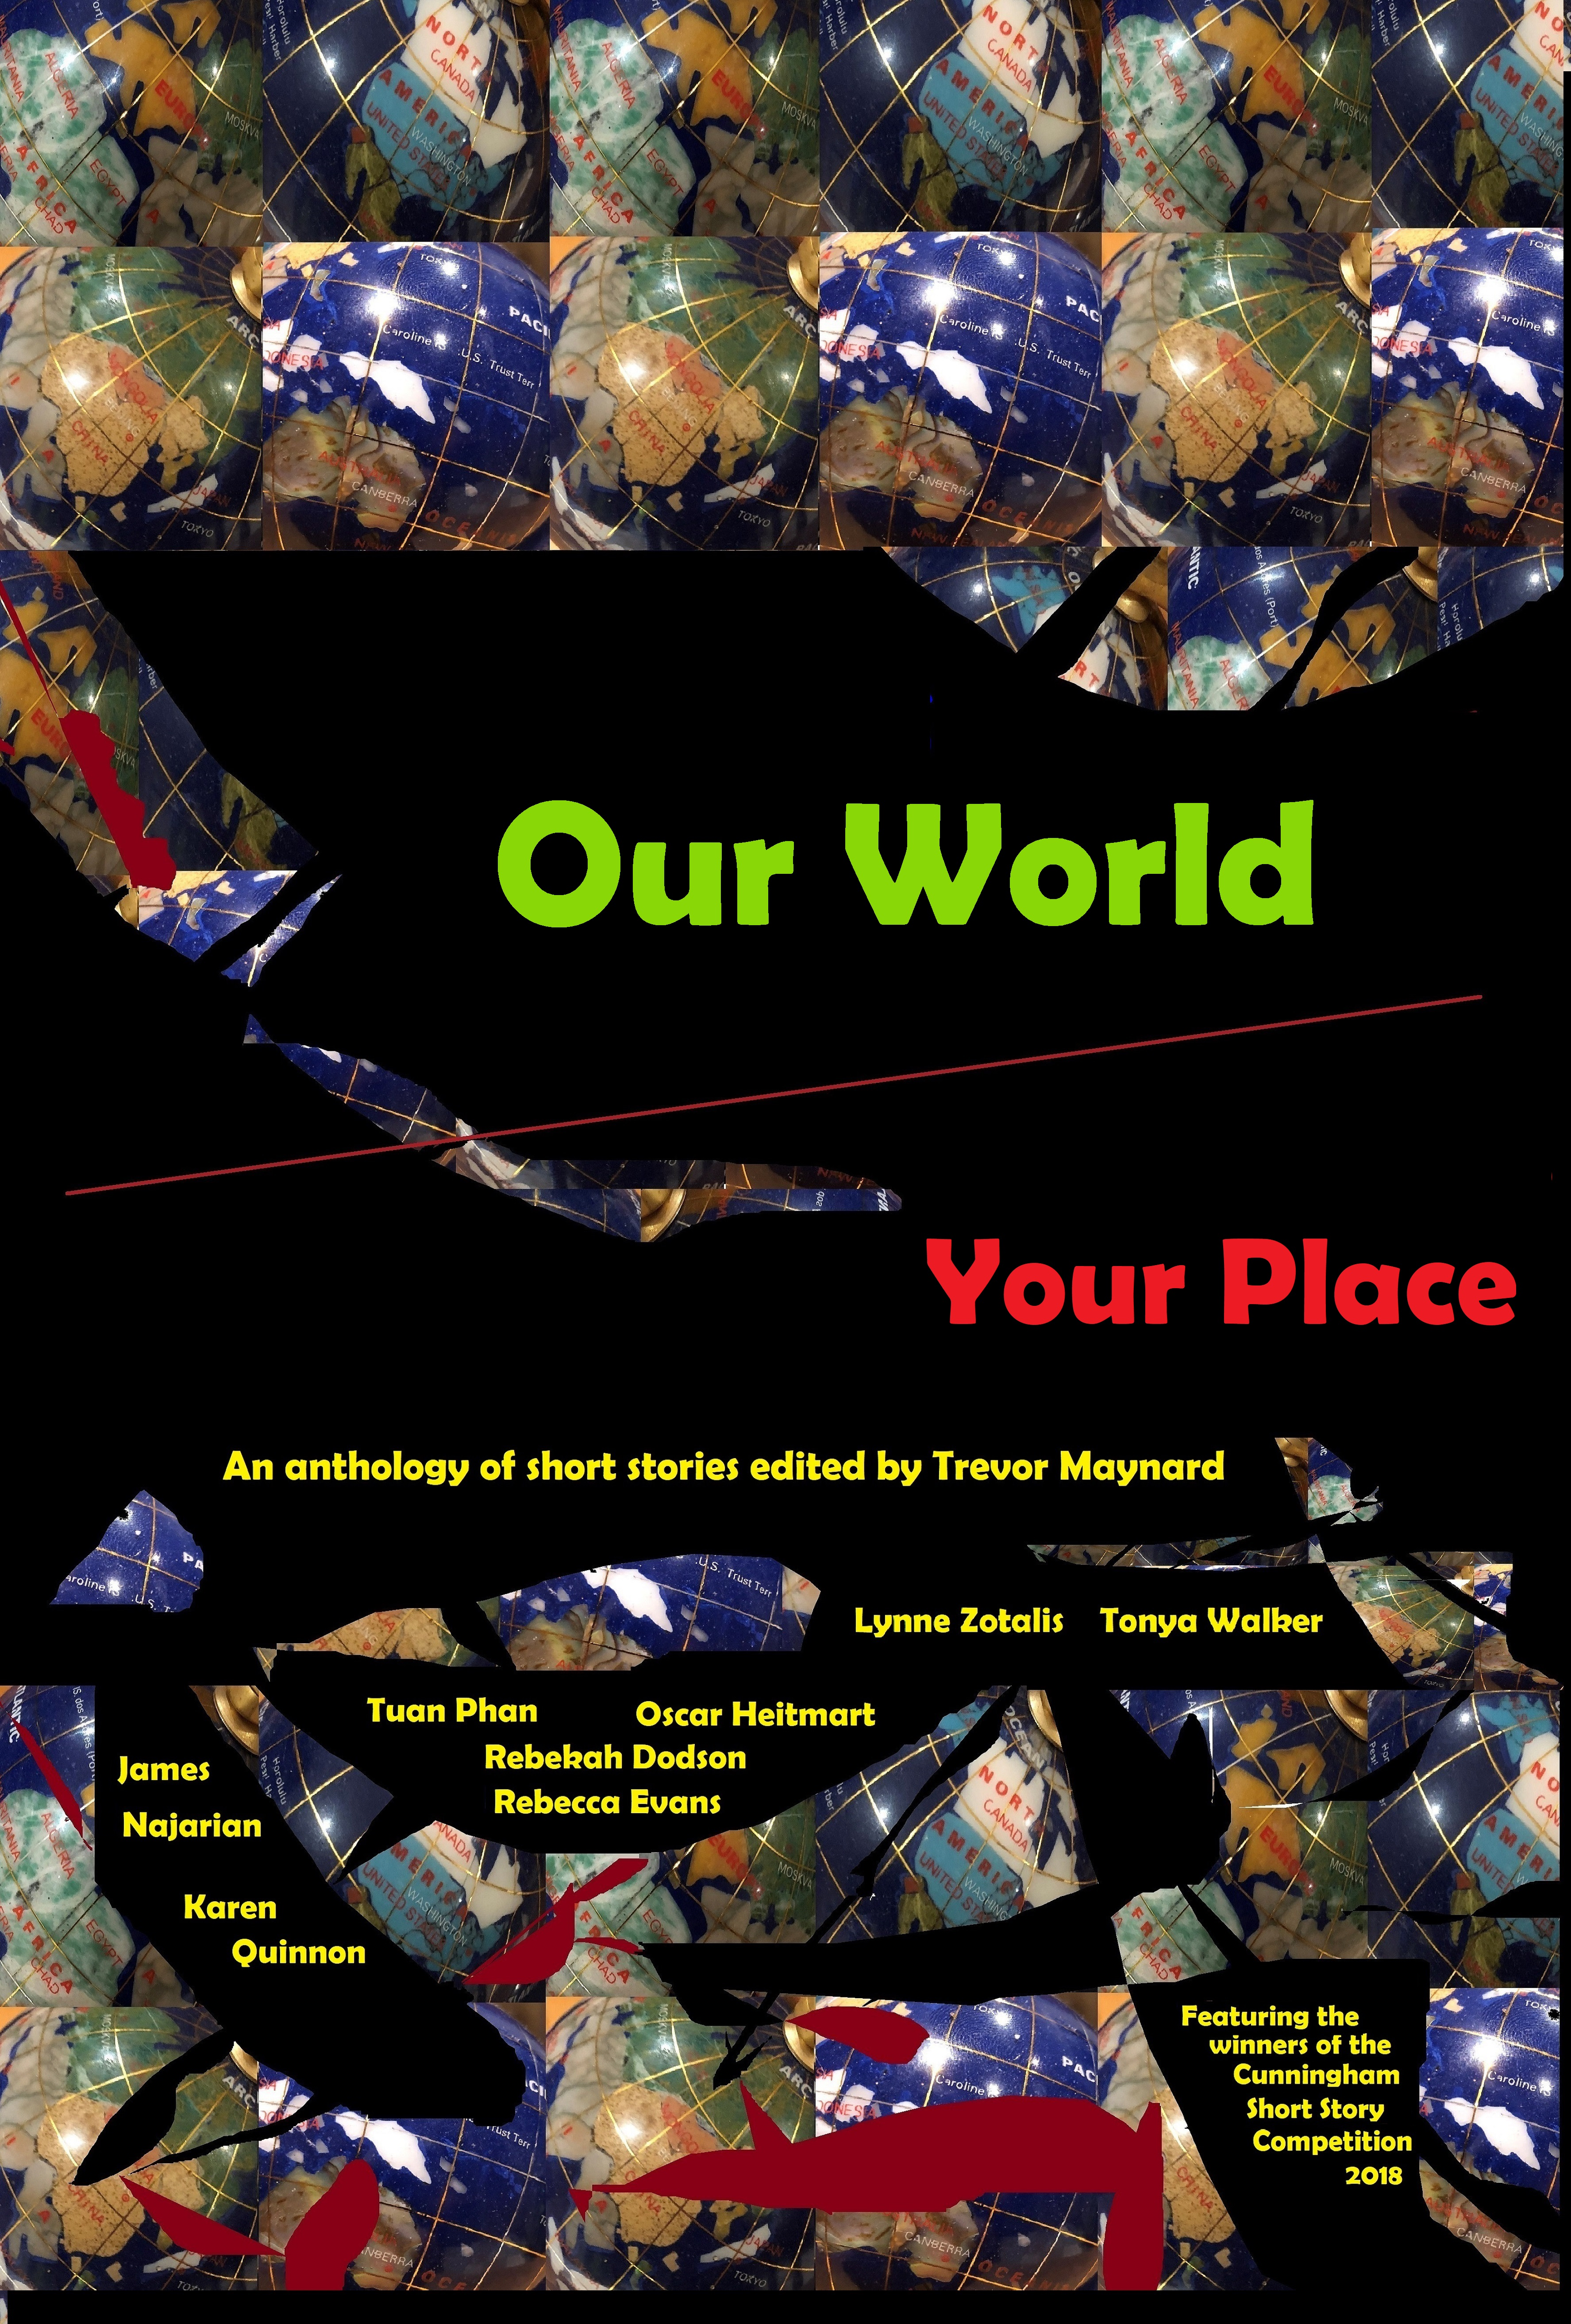 Our World, Your Place